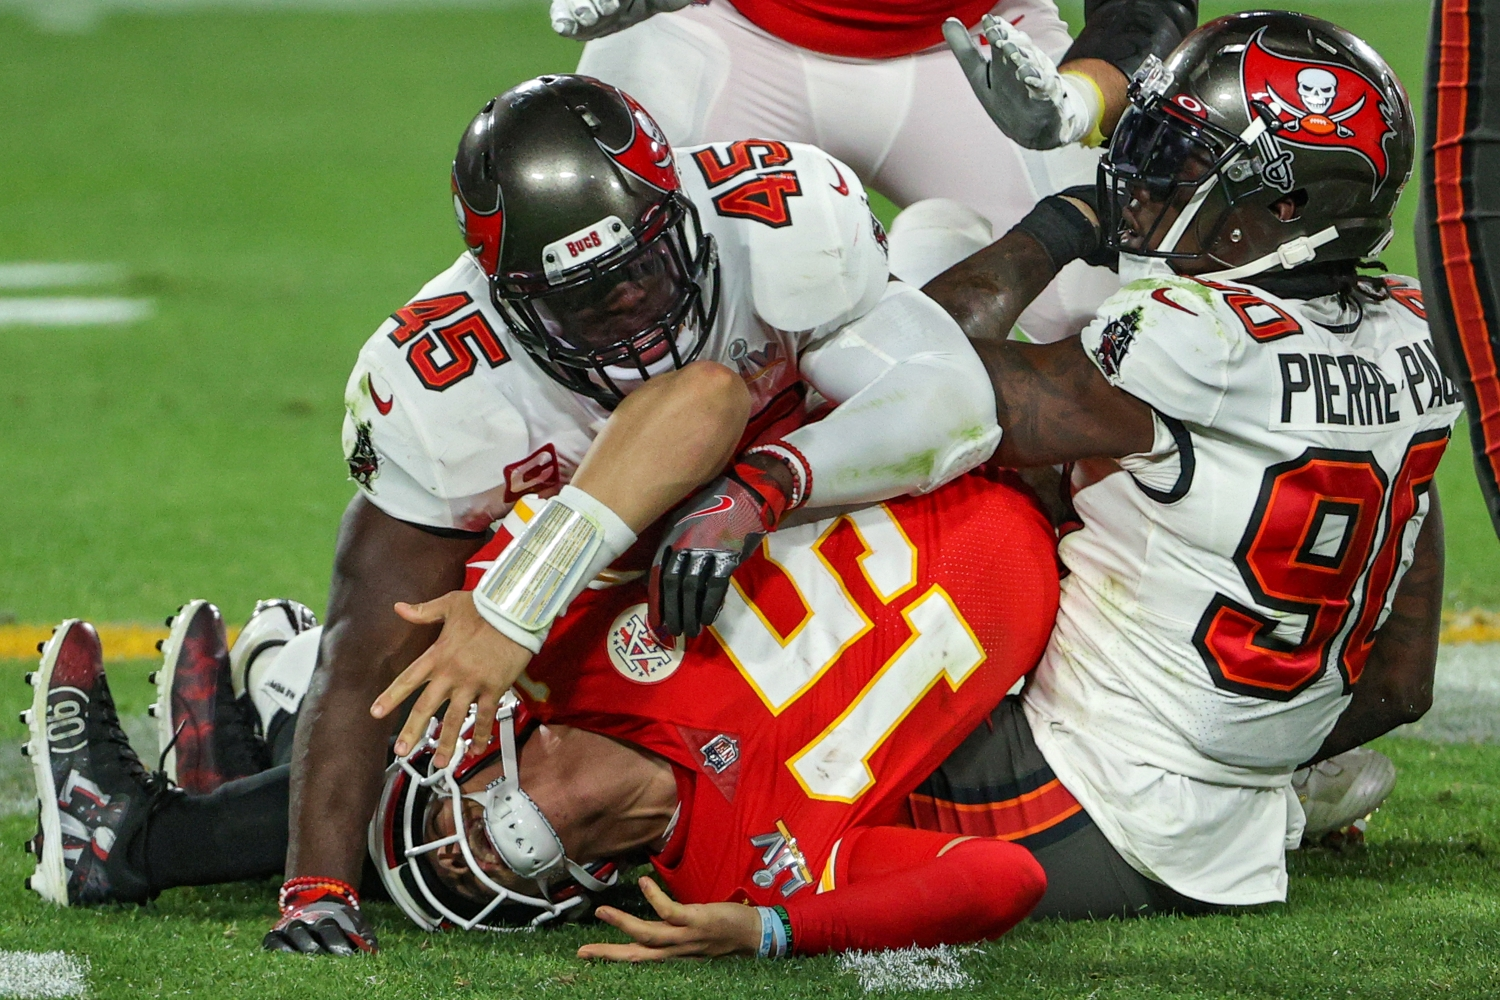 Chiefs quarterback Patrick Mahomes gets sacked by Buccaneers defenders Jason Pierre-Paul and Devin White in Super Bowl 55.